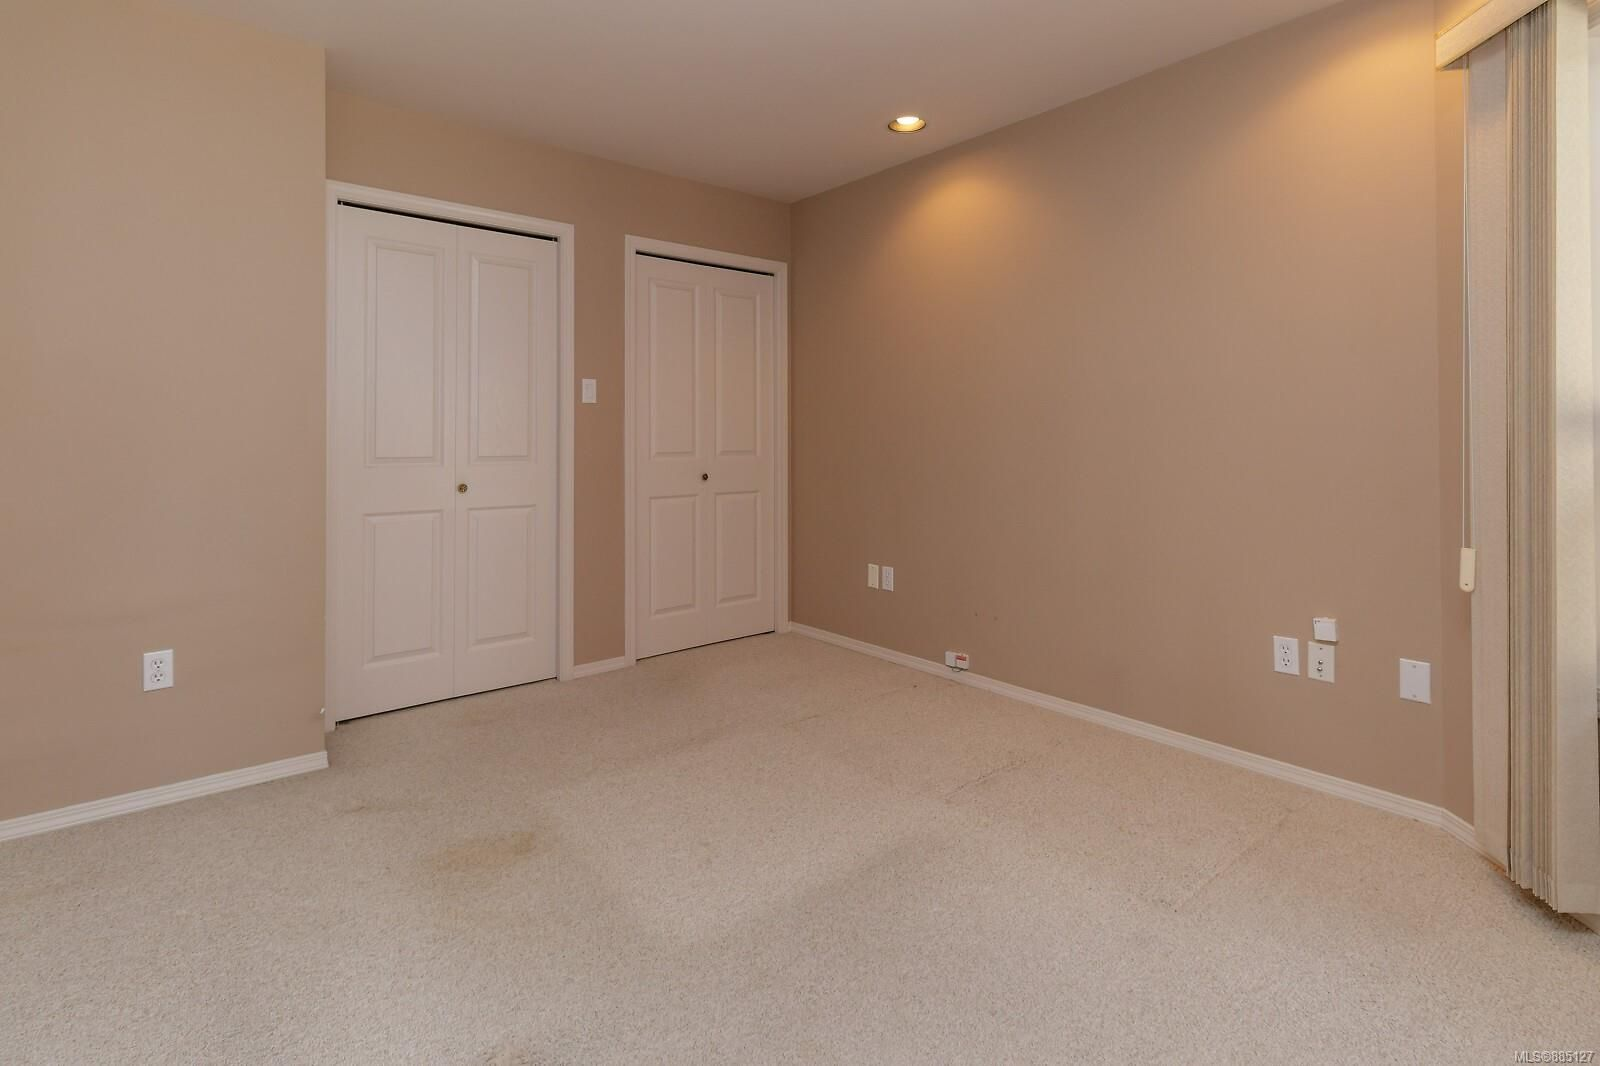 Photo 38: Photos: 26 529 Johnstone Rd in : PQ French Creek Row/Townhouse for sale (Parksville/Qualicum)  : MLS®# 885127